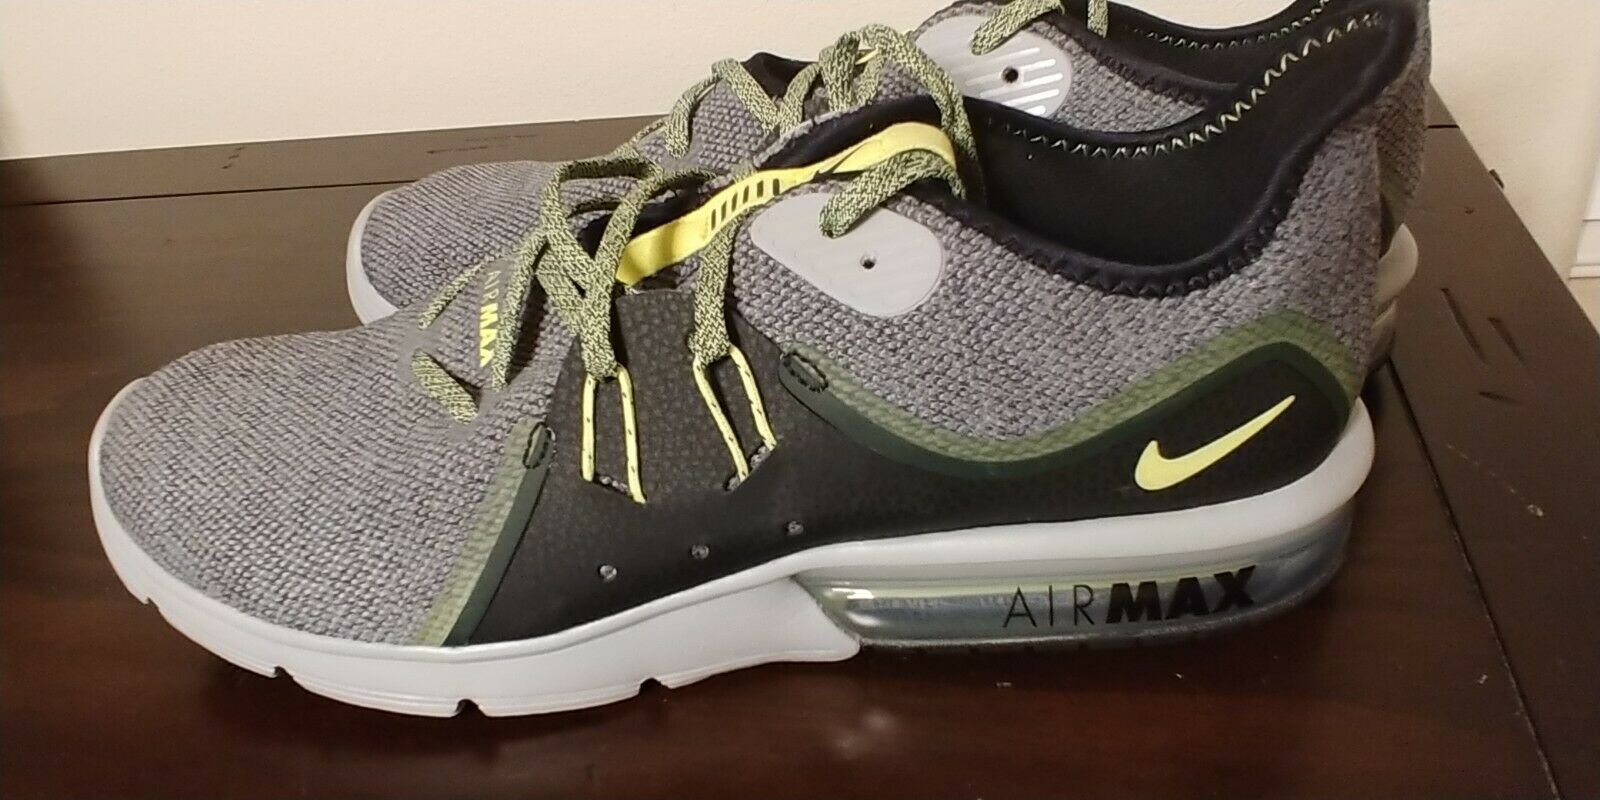 NIKE AIR MAX SEQUENT 3 RUNNING SHOES SIZE 12